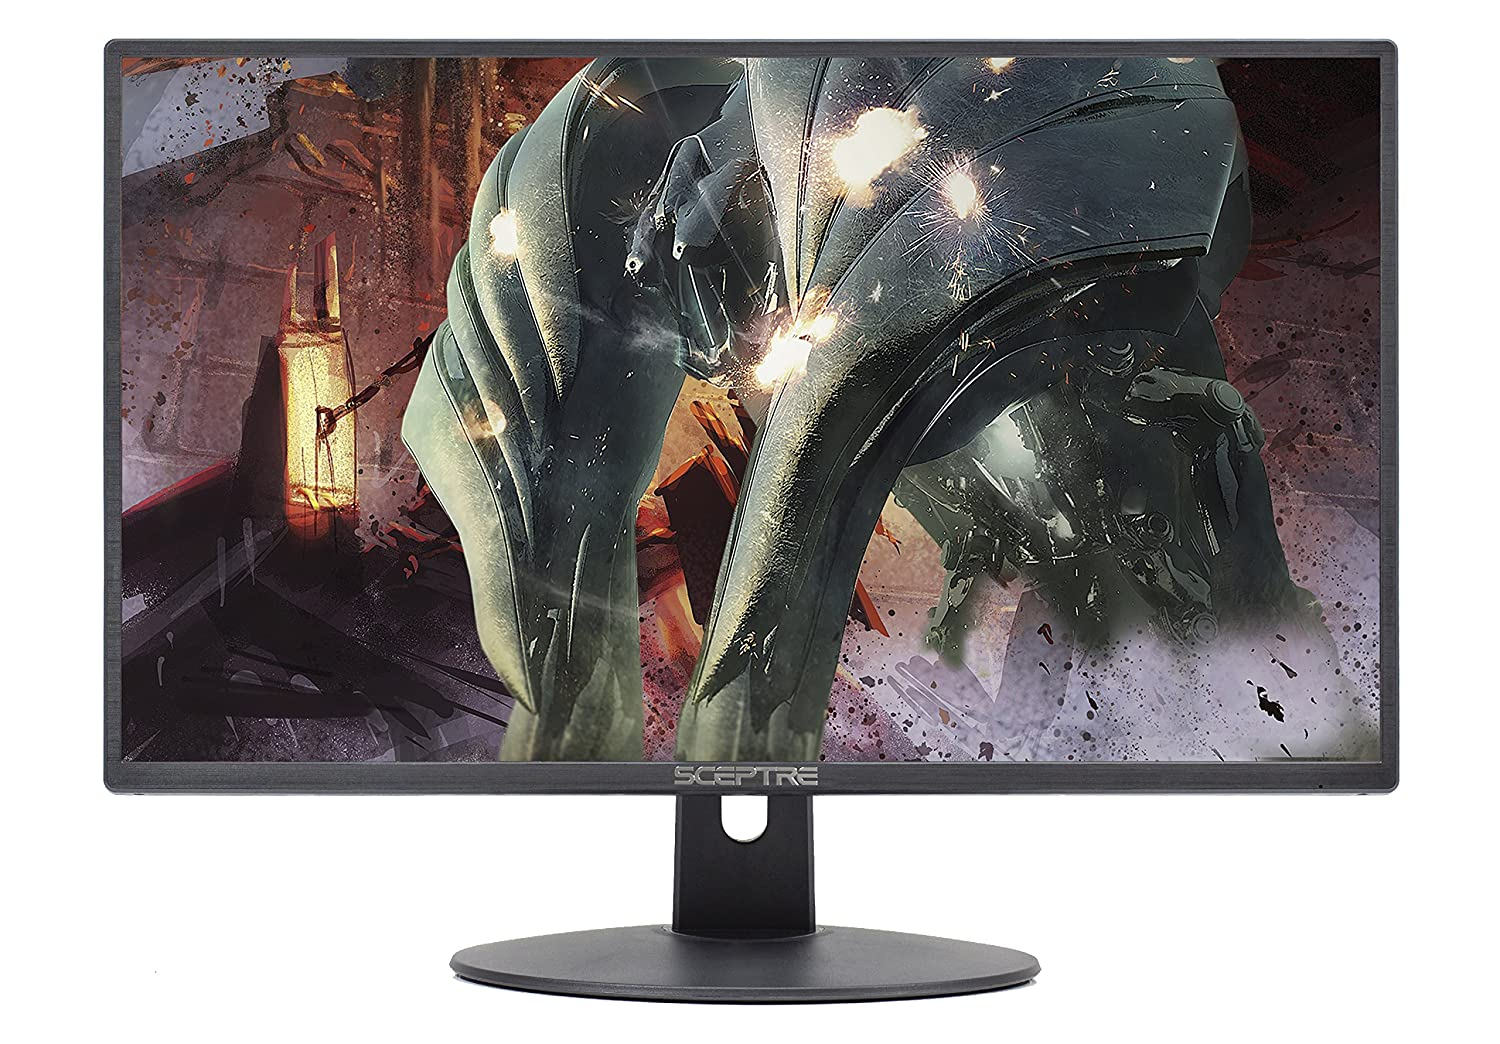 Sceptre 27-Inch FHD LED Gaming Monitor 75Hz 2X HDMI VGA Build-in Speakers, Ultra Slim Metal Black 2018